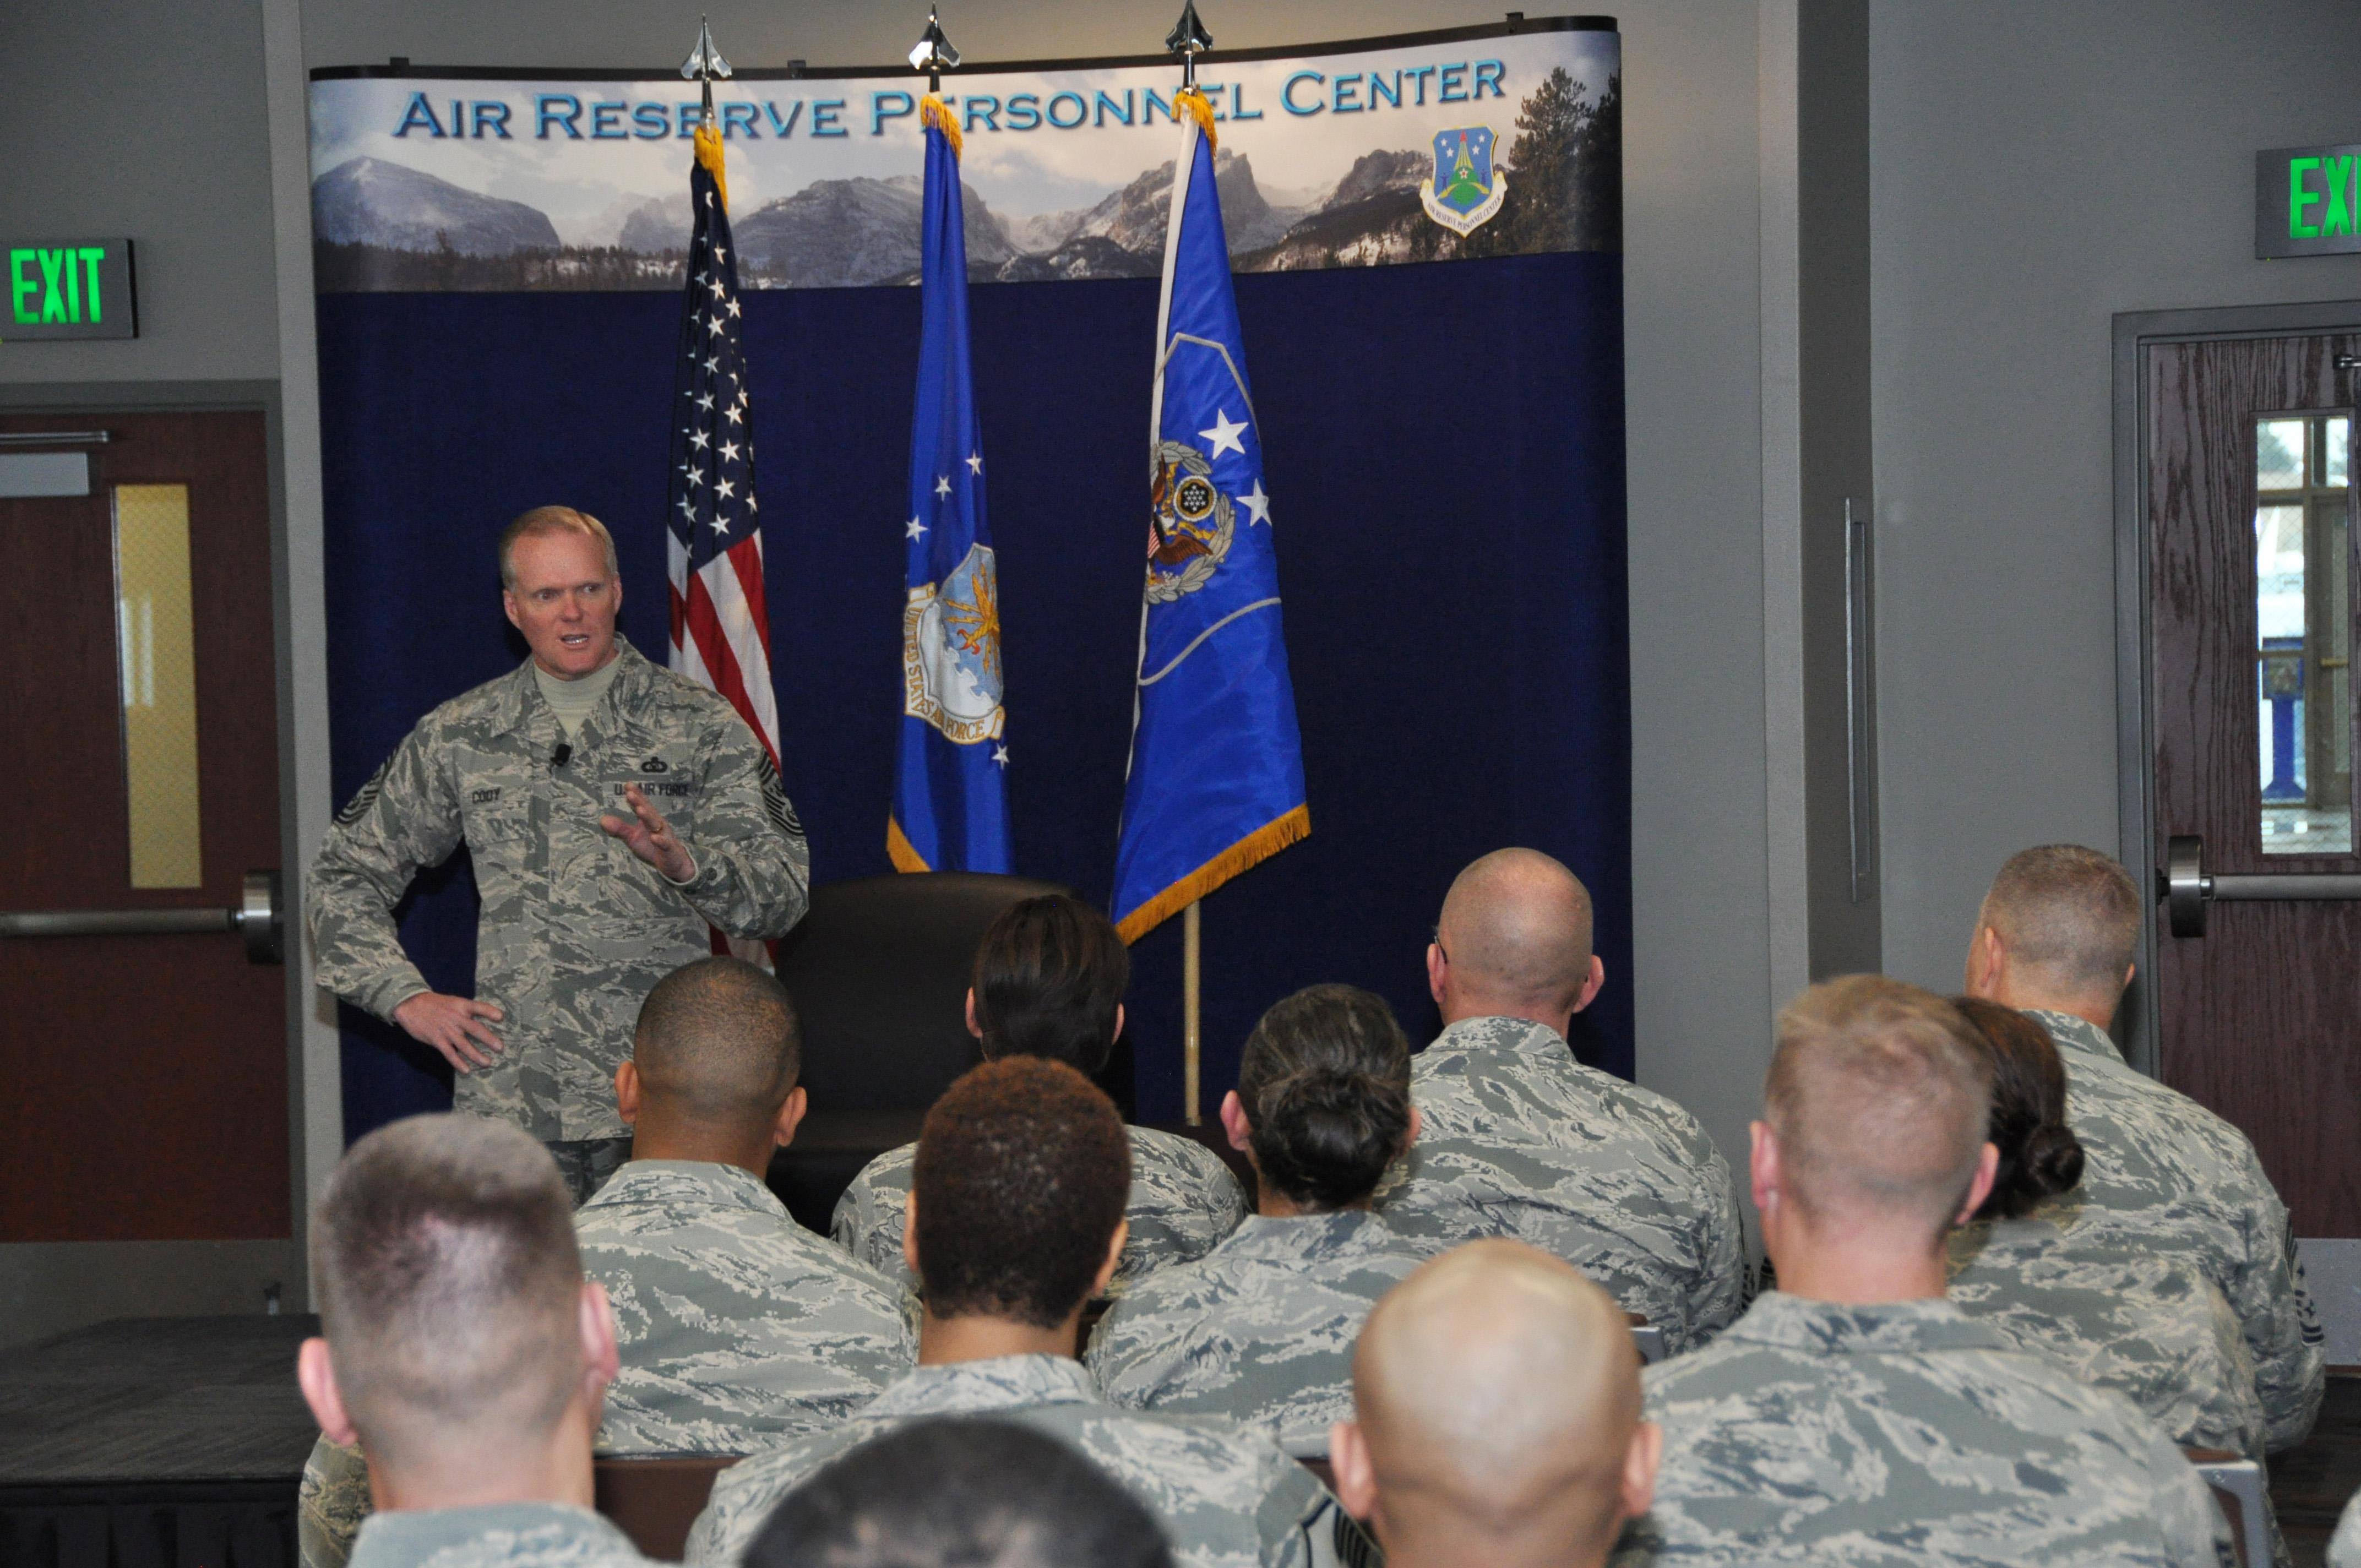 Cody visits Air Reserve Personnel Center > Air Force Reserve